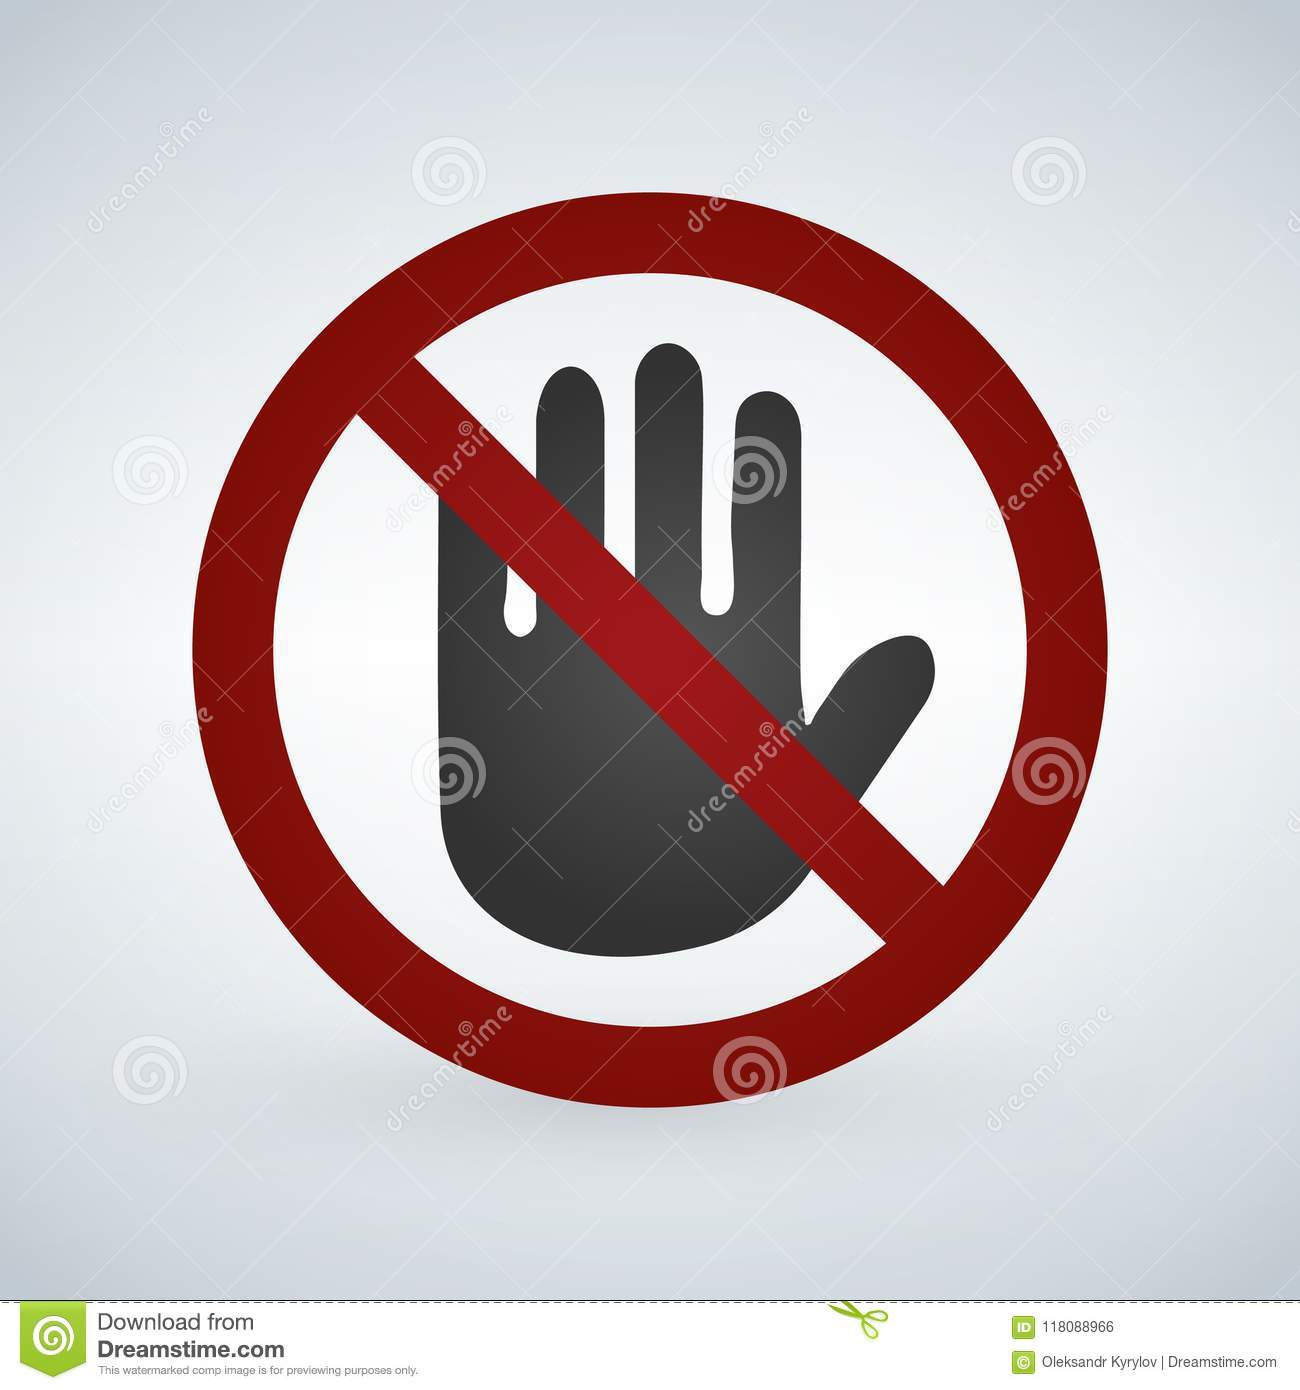 Do not touch icon, vector illustration isolated on white background.